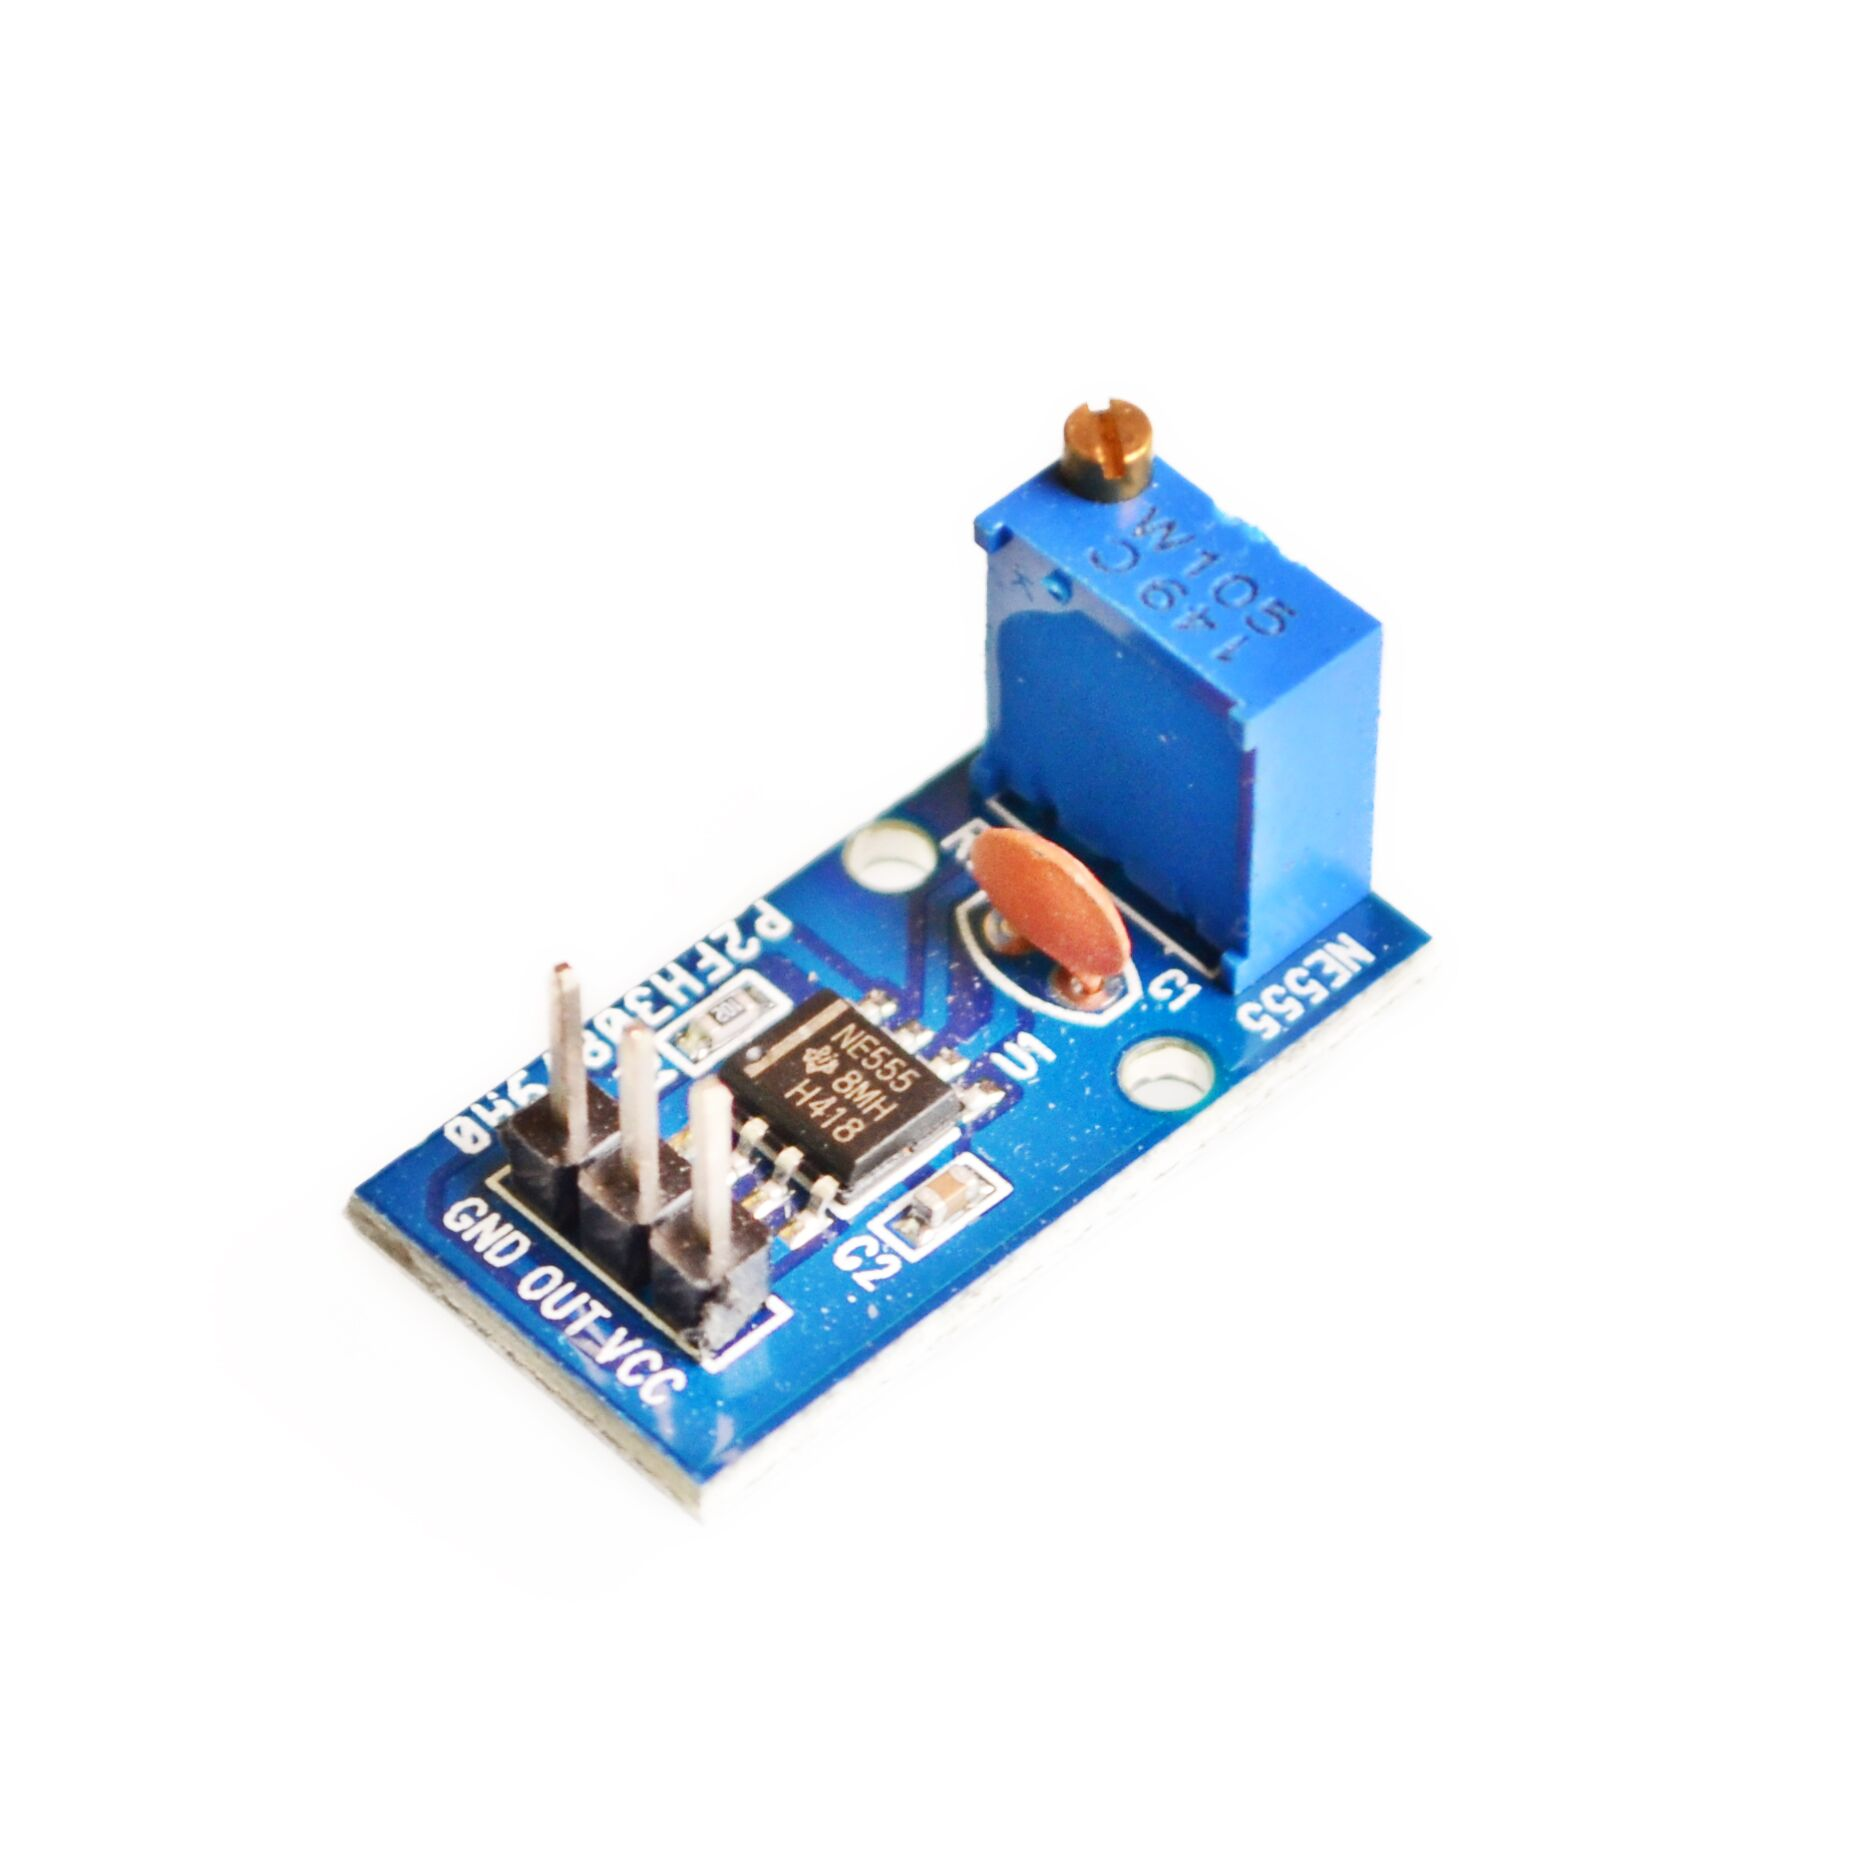 Ne555 Pulse Frequency Duty Cycle Adjustable Module Square Wave Mcu Controlled Superregeneration With Quartz Oscillators Generator